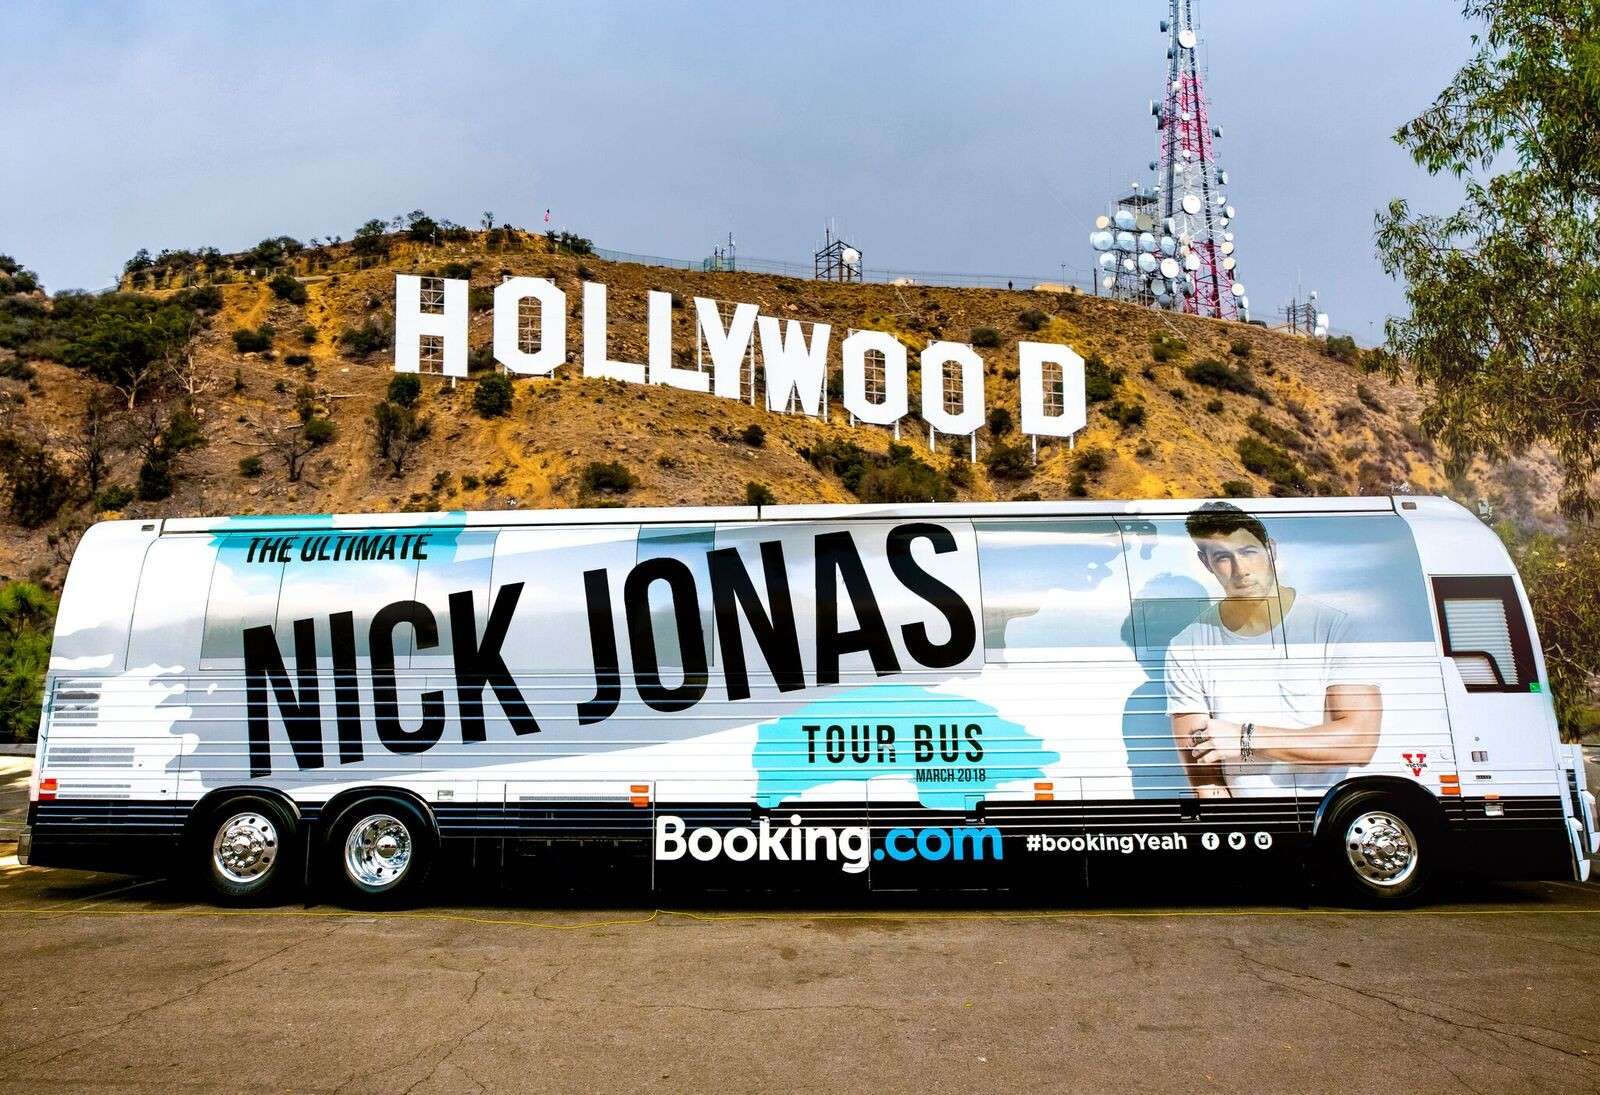 The Ultimate Nick Jonas Tour Bus